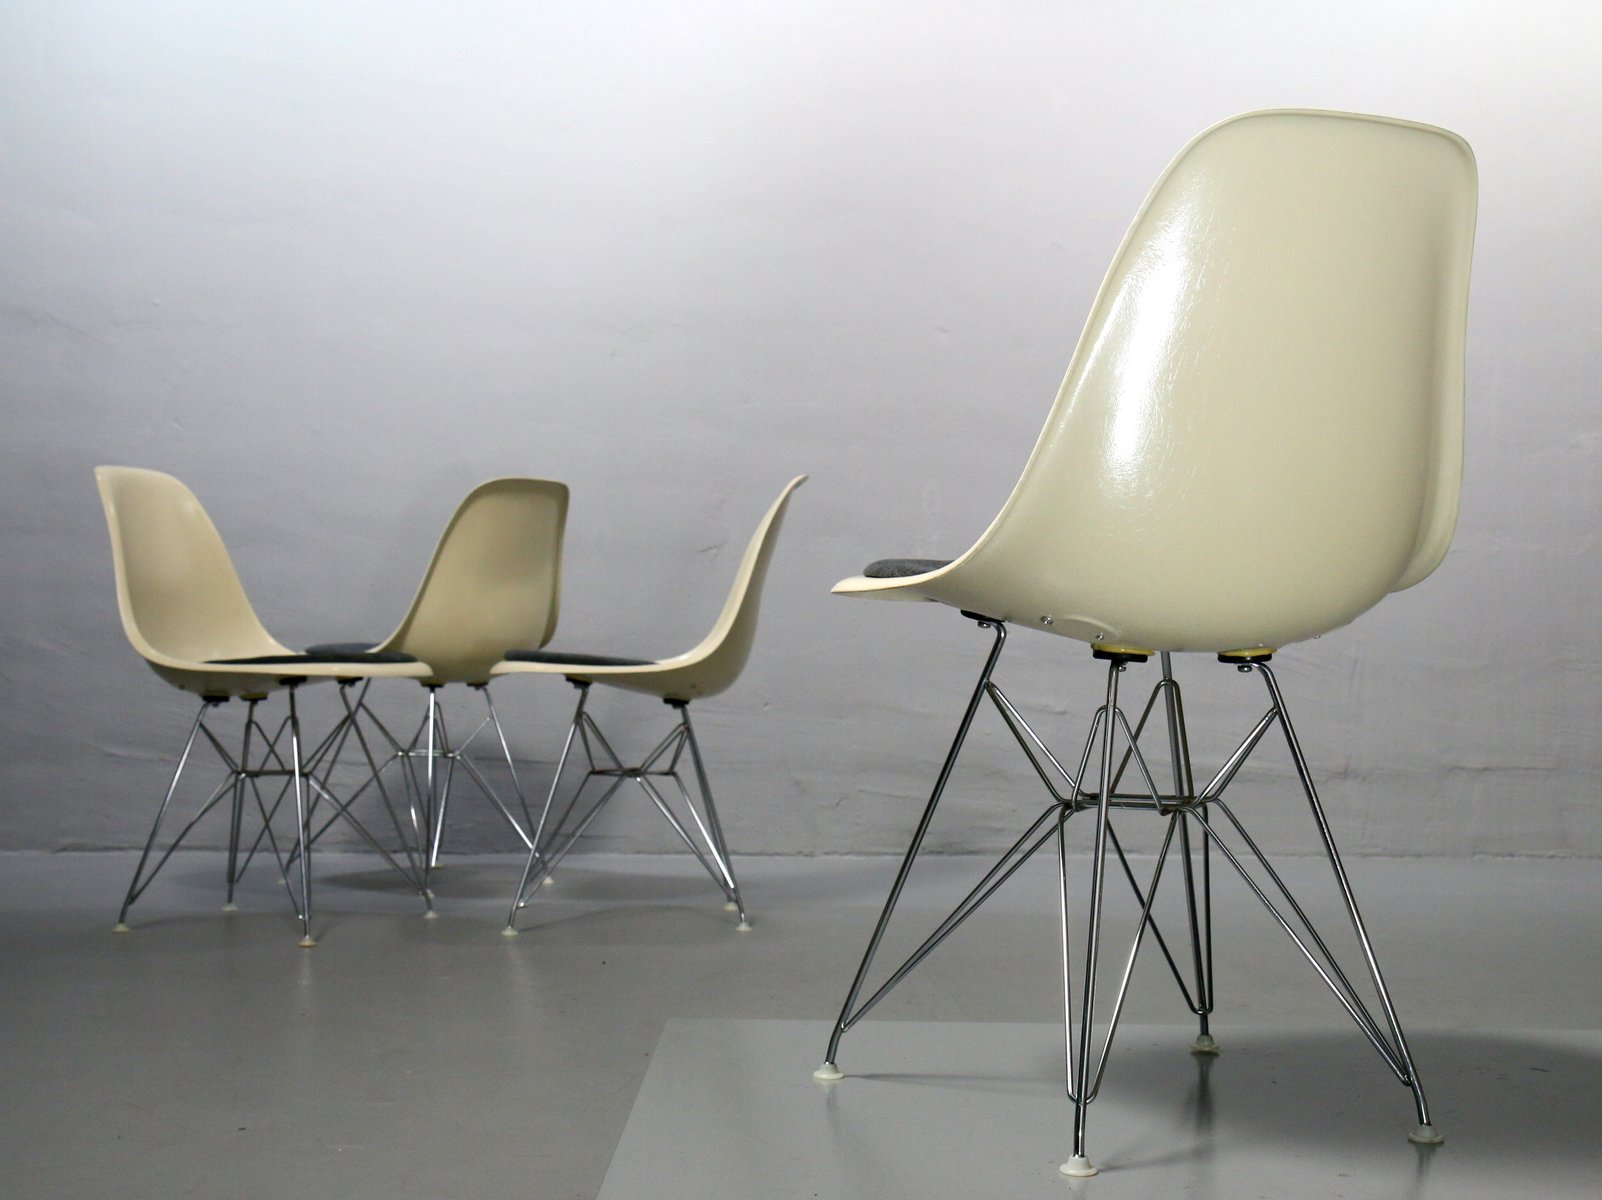 vintage side chairs by charles ray eames for vitra set of 4 for sale at pamono. Black Bedroom Furniture Sets. Home Design Ideas